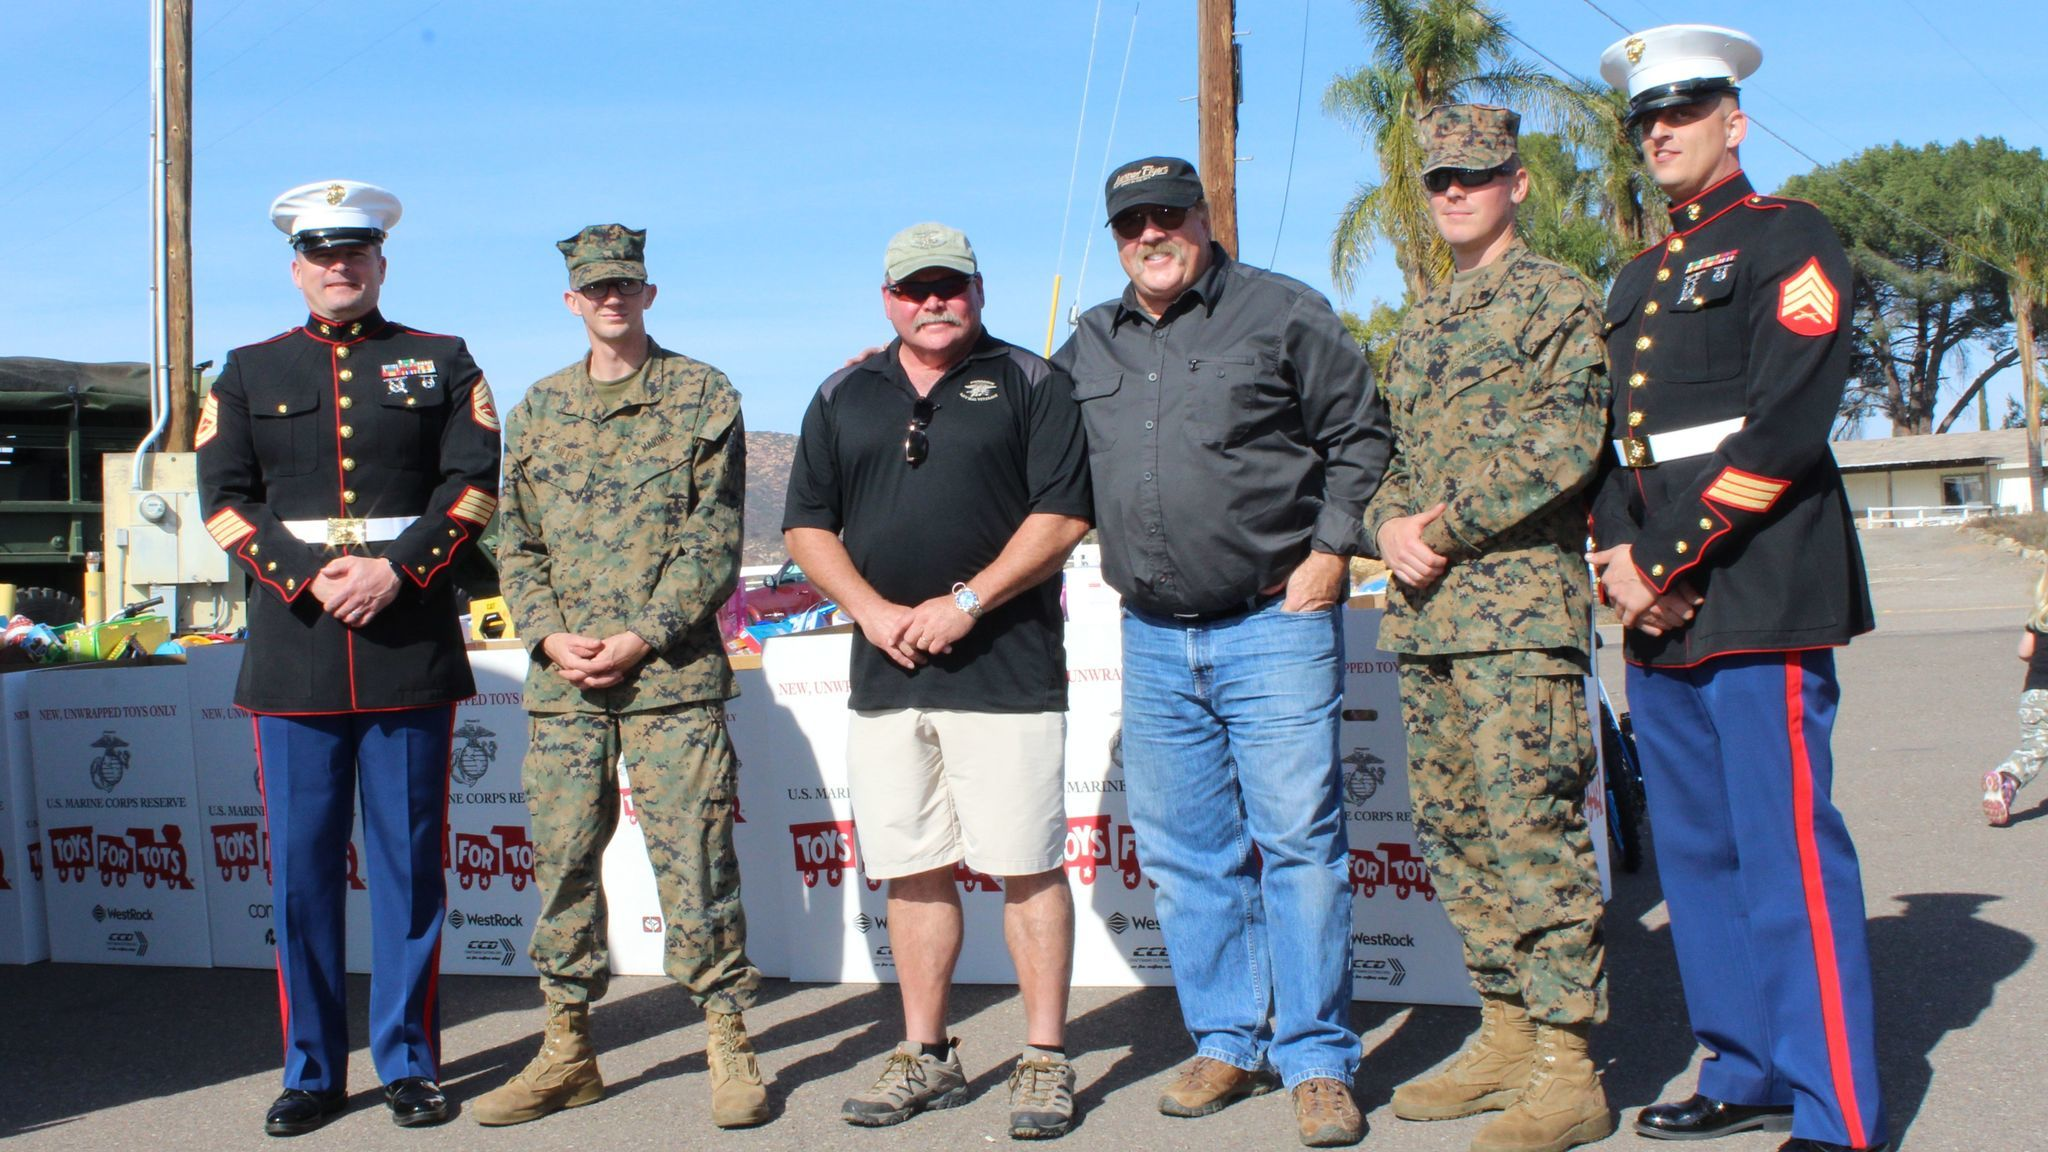 Pilots Rick Sullivan and Mike Johnson visit with Gunnery Sgt. Warren Arnett, Lance Cpl. Andrew Fuller, Sgt. Keith Babudar and Sgt. Jon Cole.